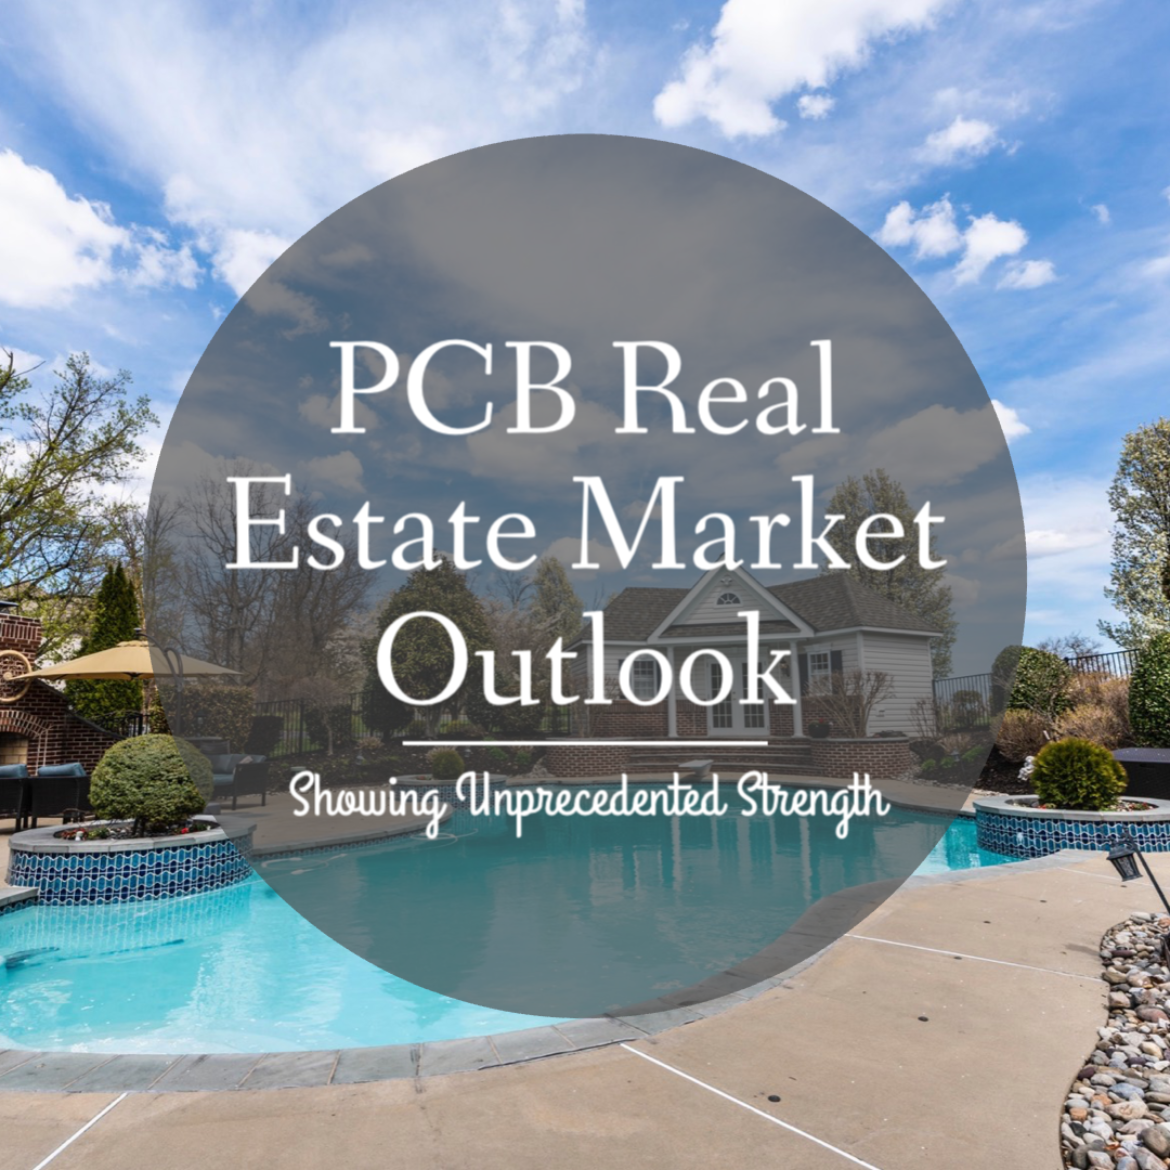 PCB Real Estate Market Outlook